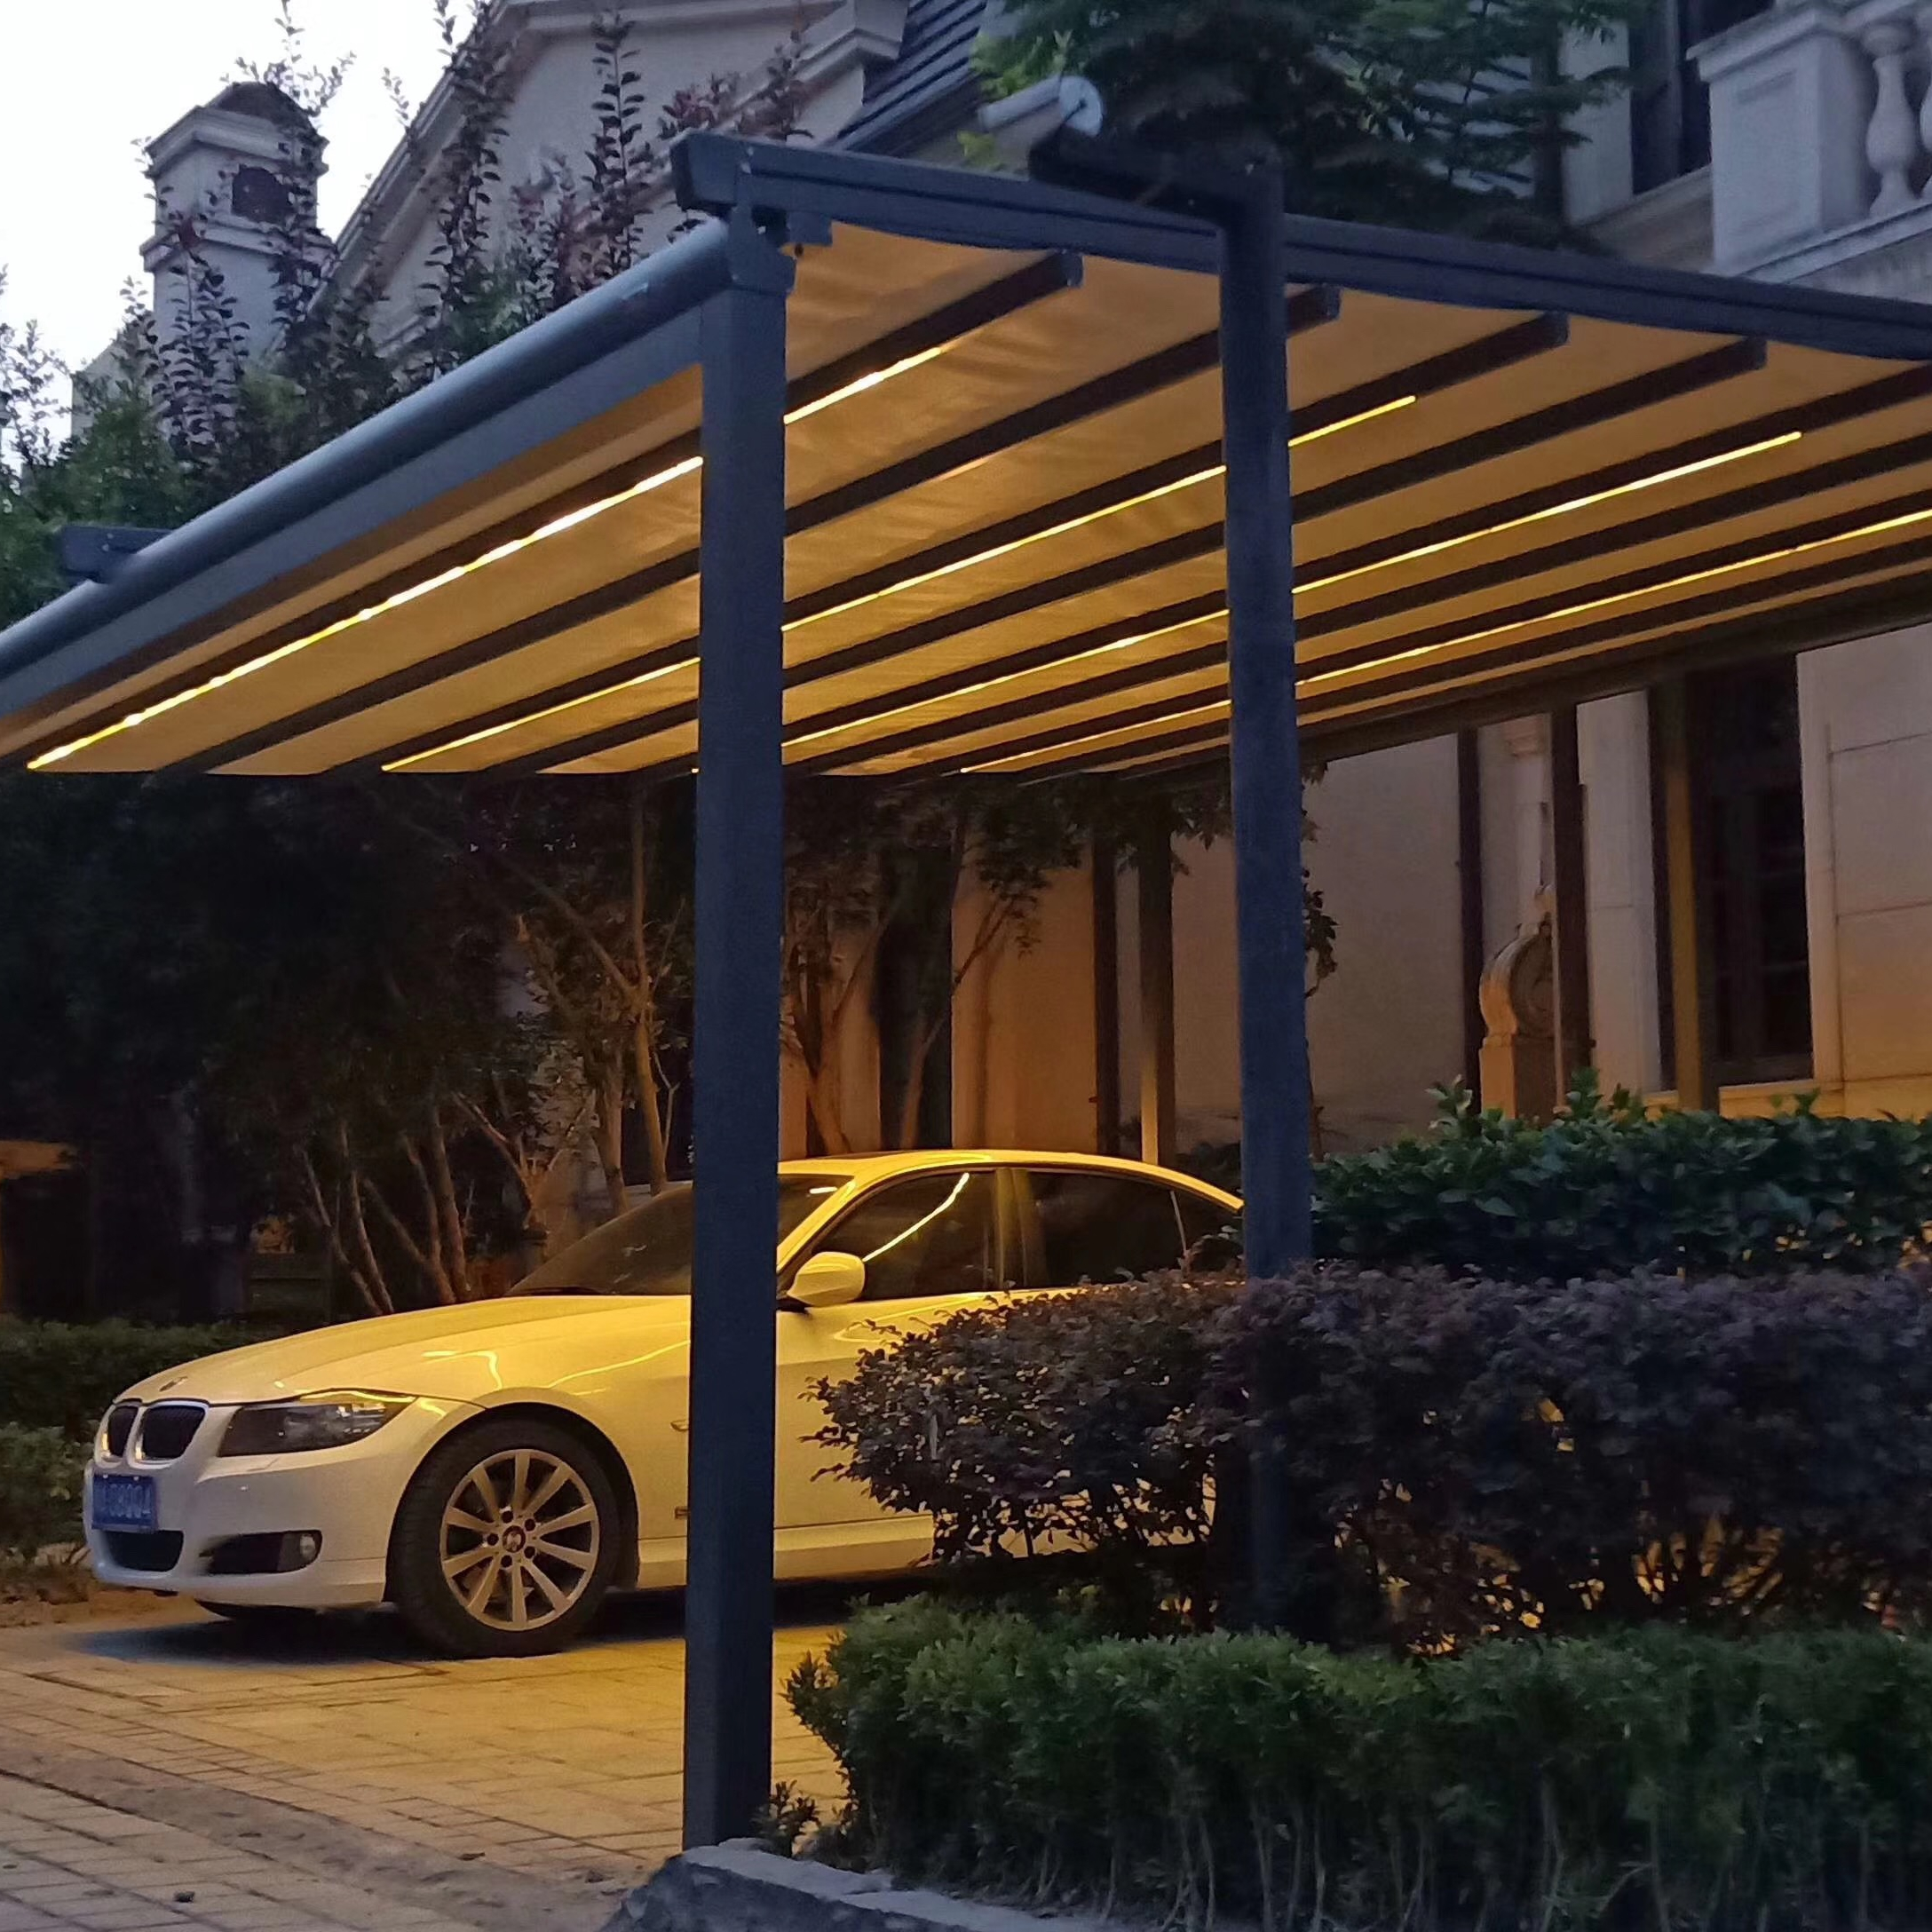 Conservatory Cheap Collapsible Modern Auto Metal Bio-climatic Building Easily Assembled Motorized Rainproof Aluminum Awning